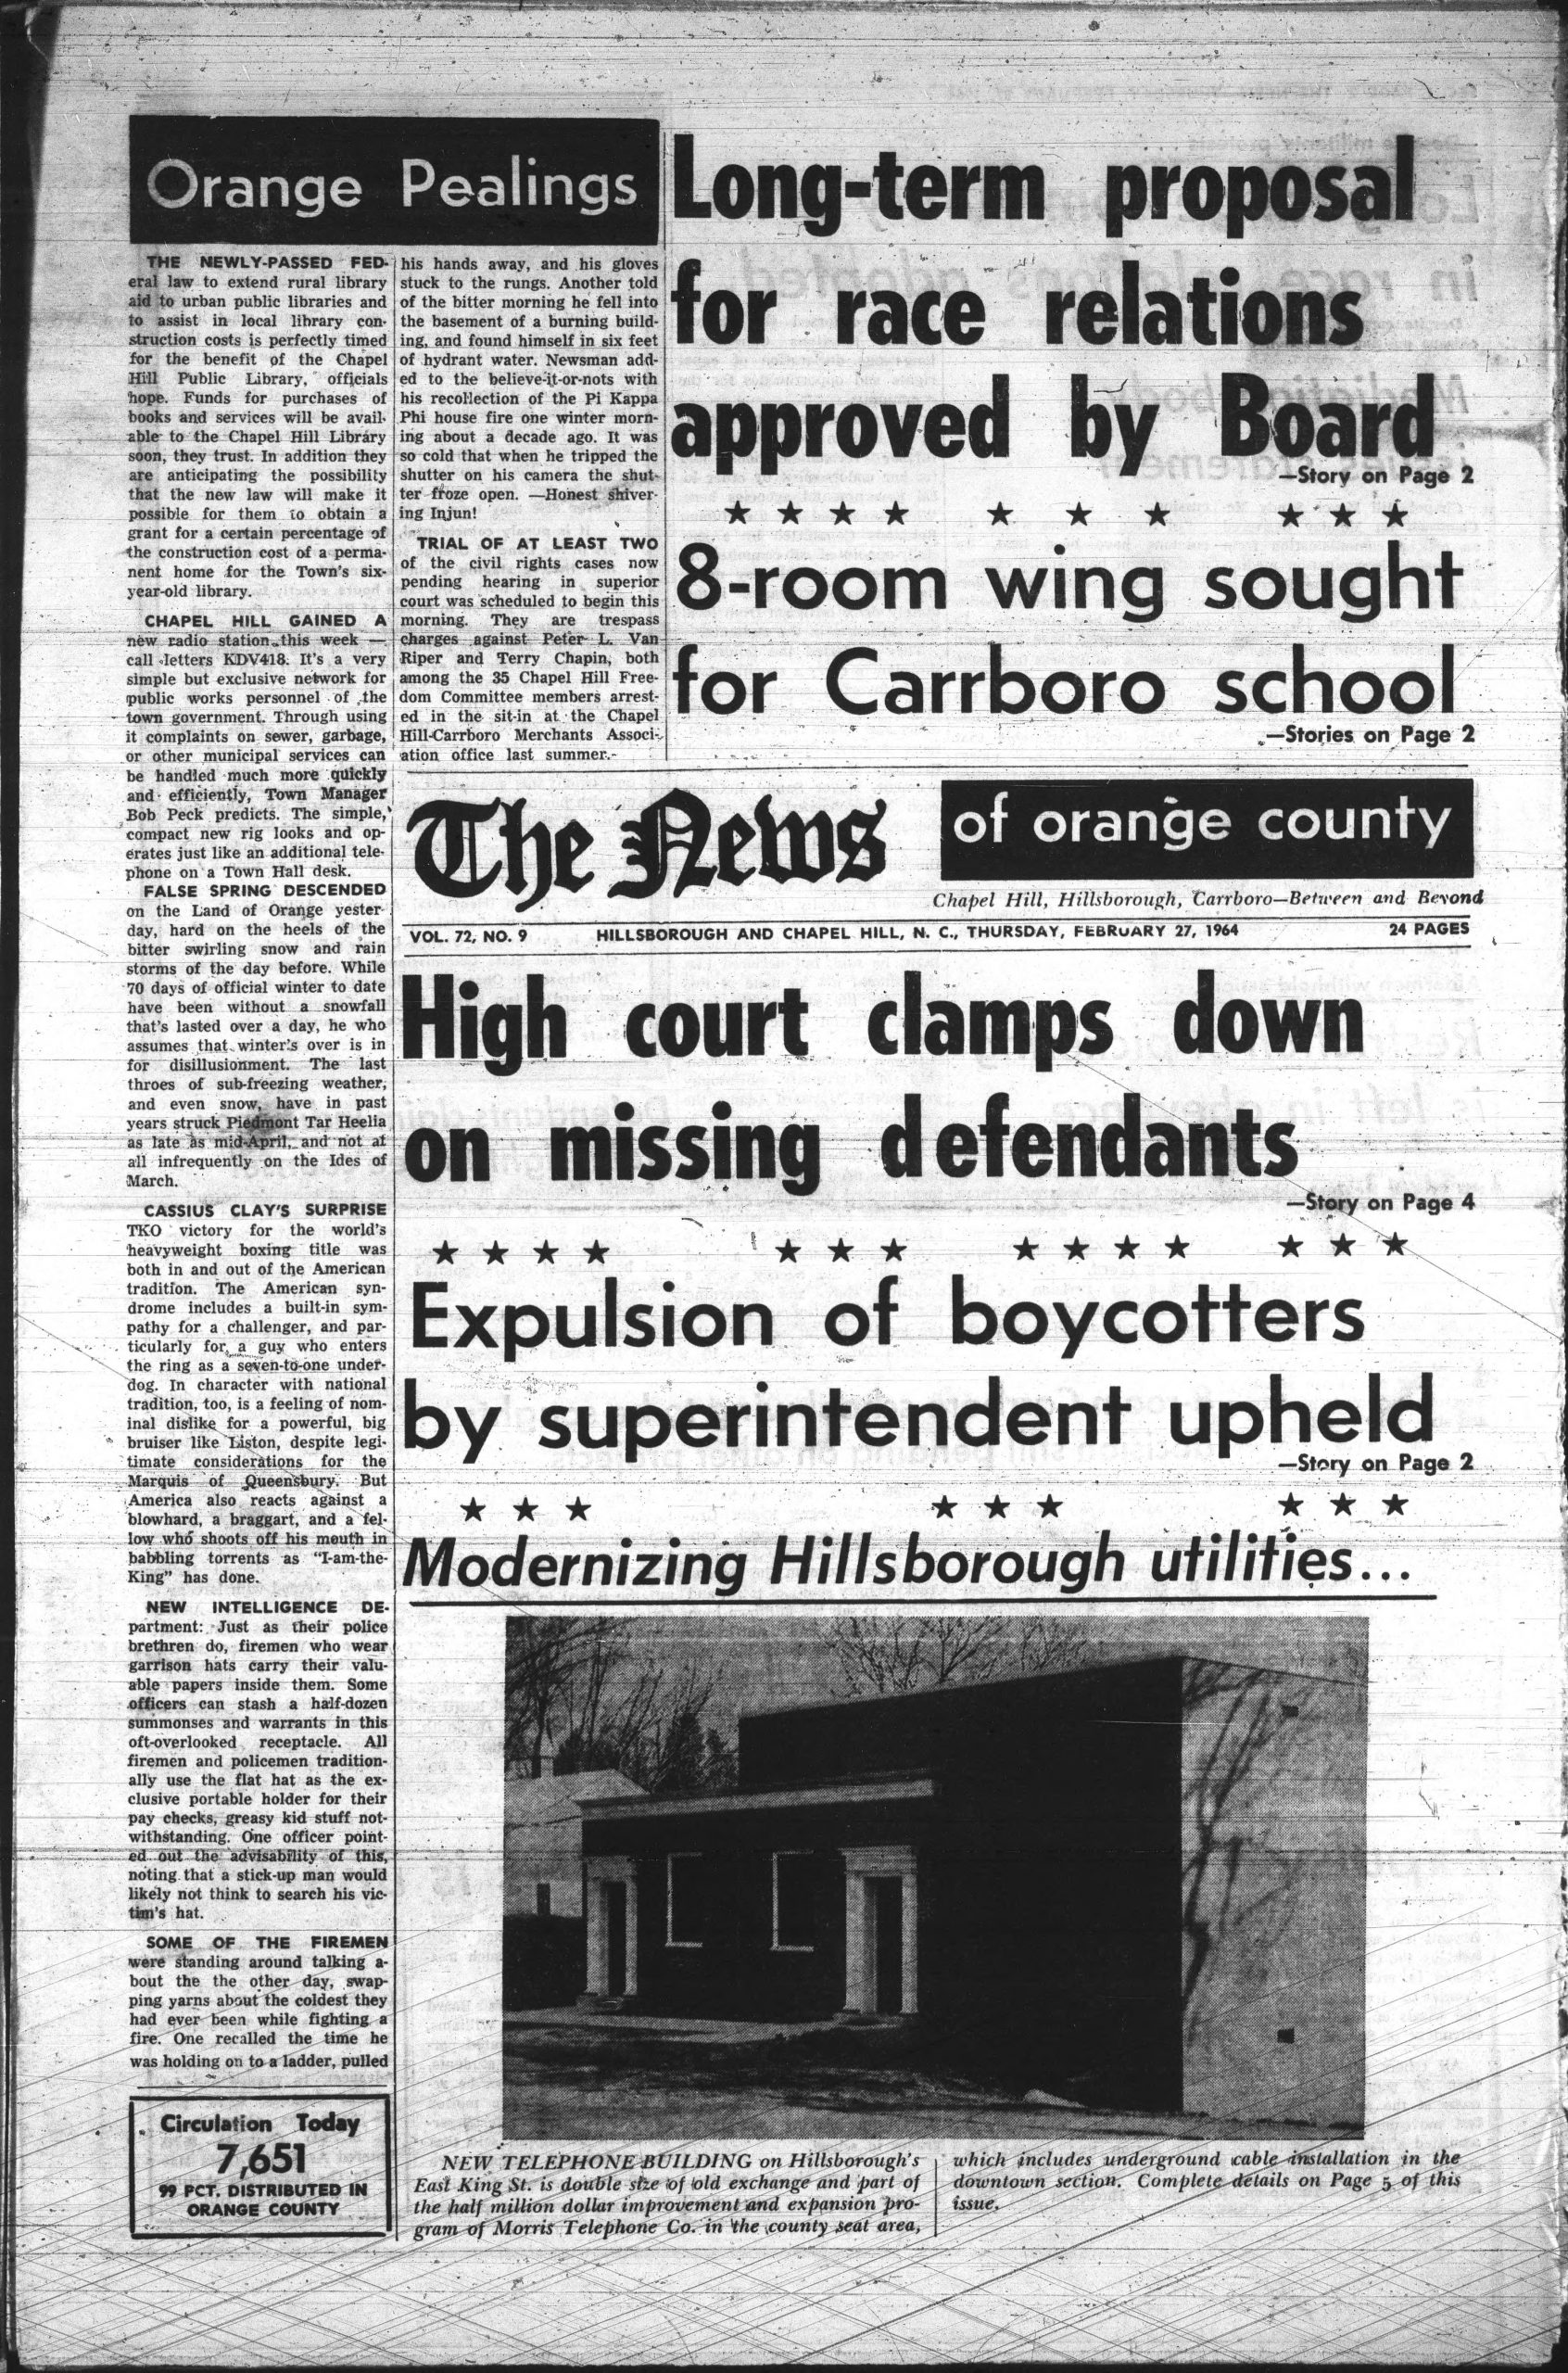 Black and white front page of an English language newspaper with photo of one-story building